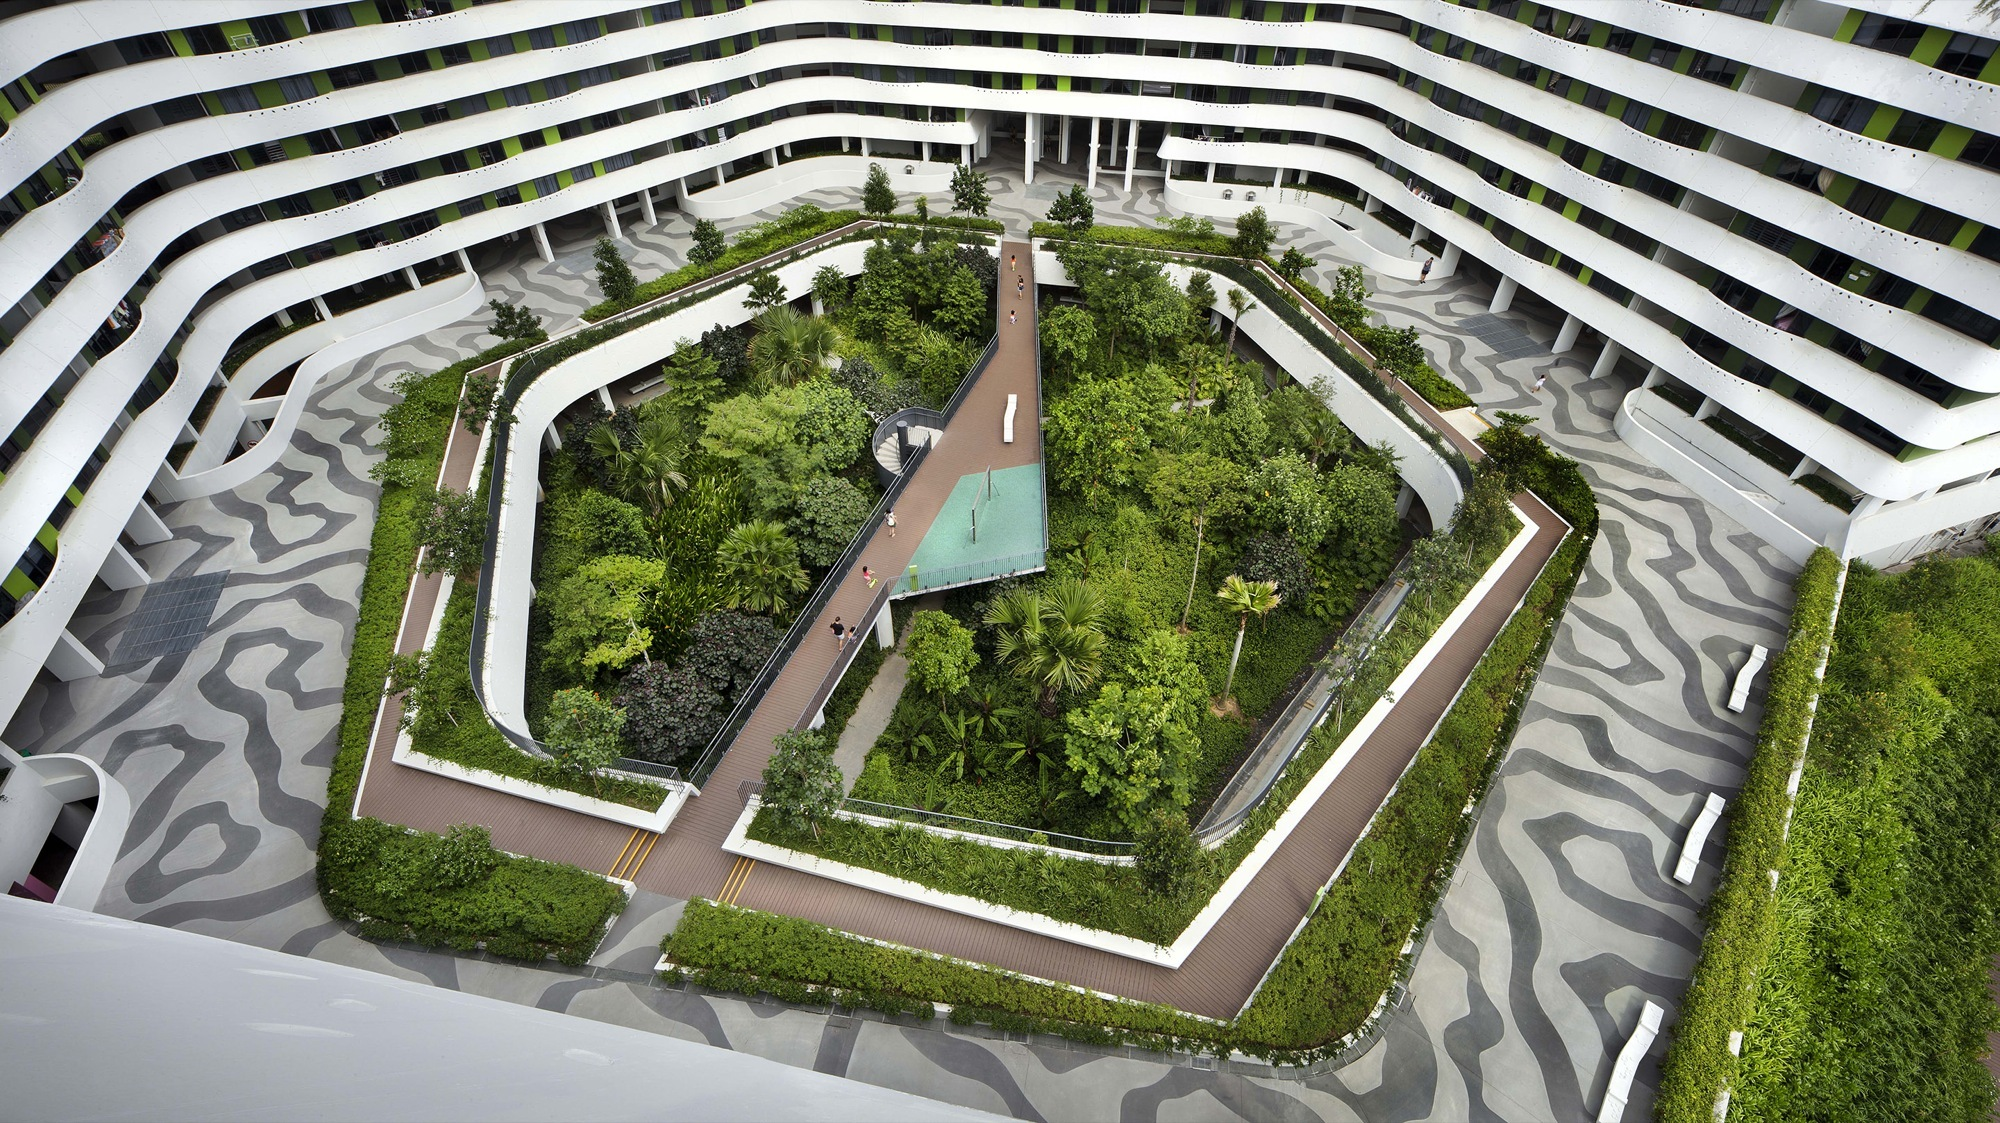 Roof Garden Plants Gallery Of Punggol Waterway Terraces Group8asia Aedas 3